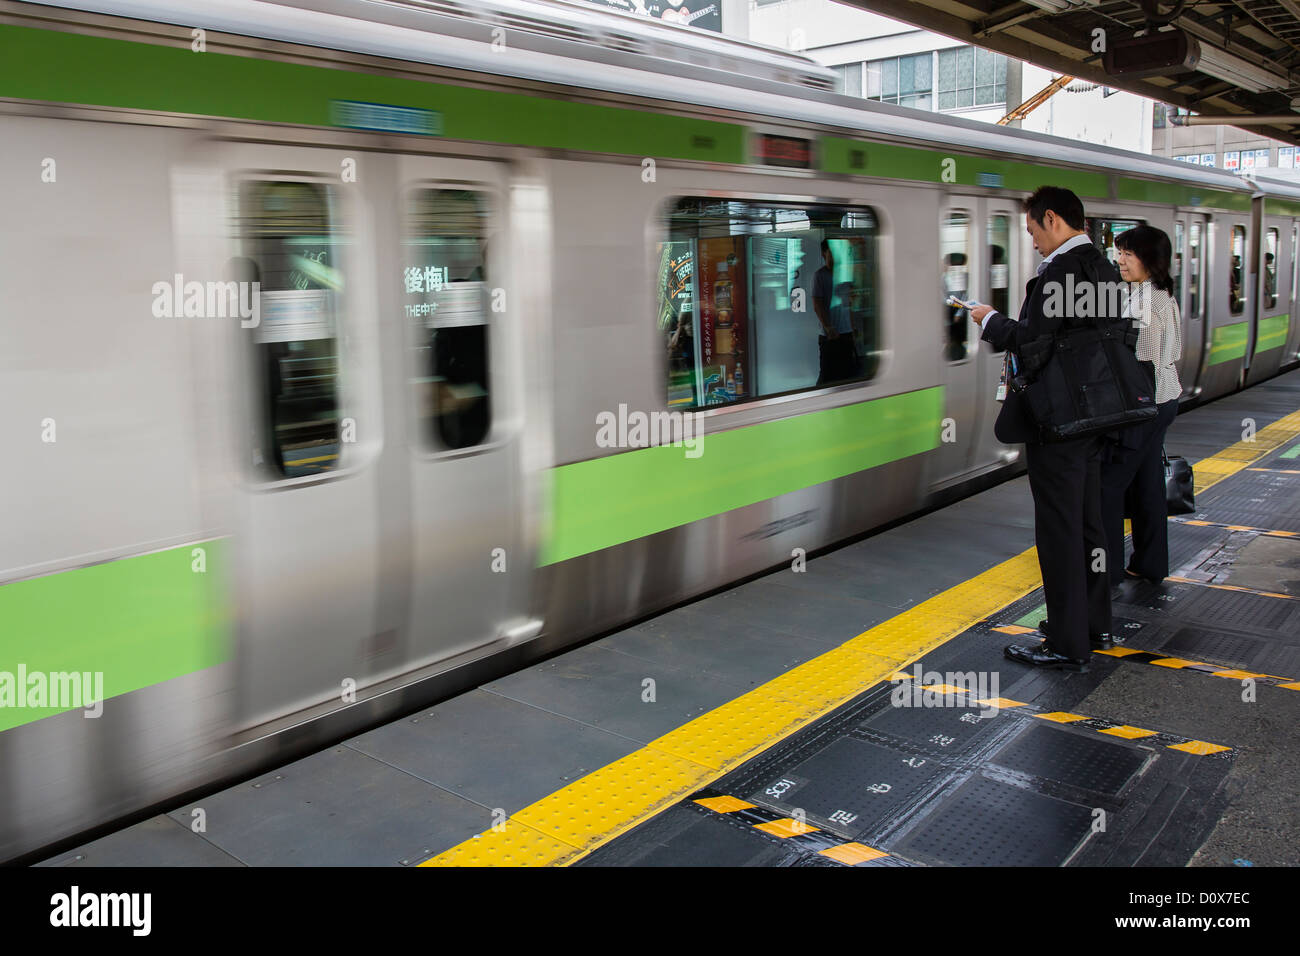 What is fed at the station in Tokyo